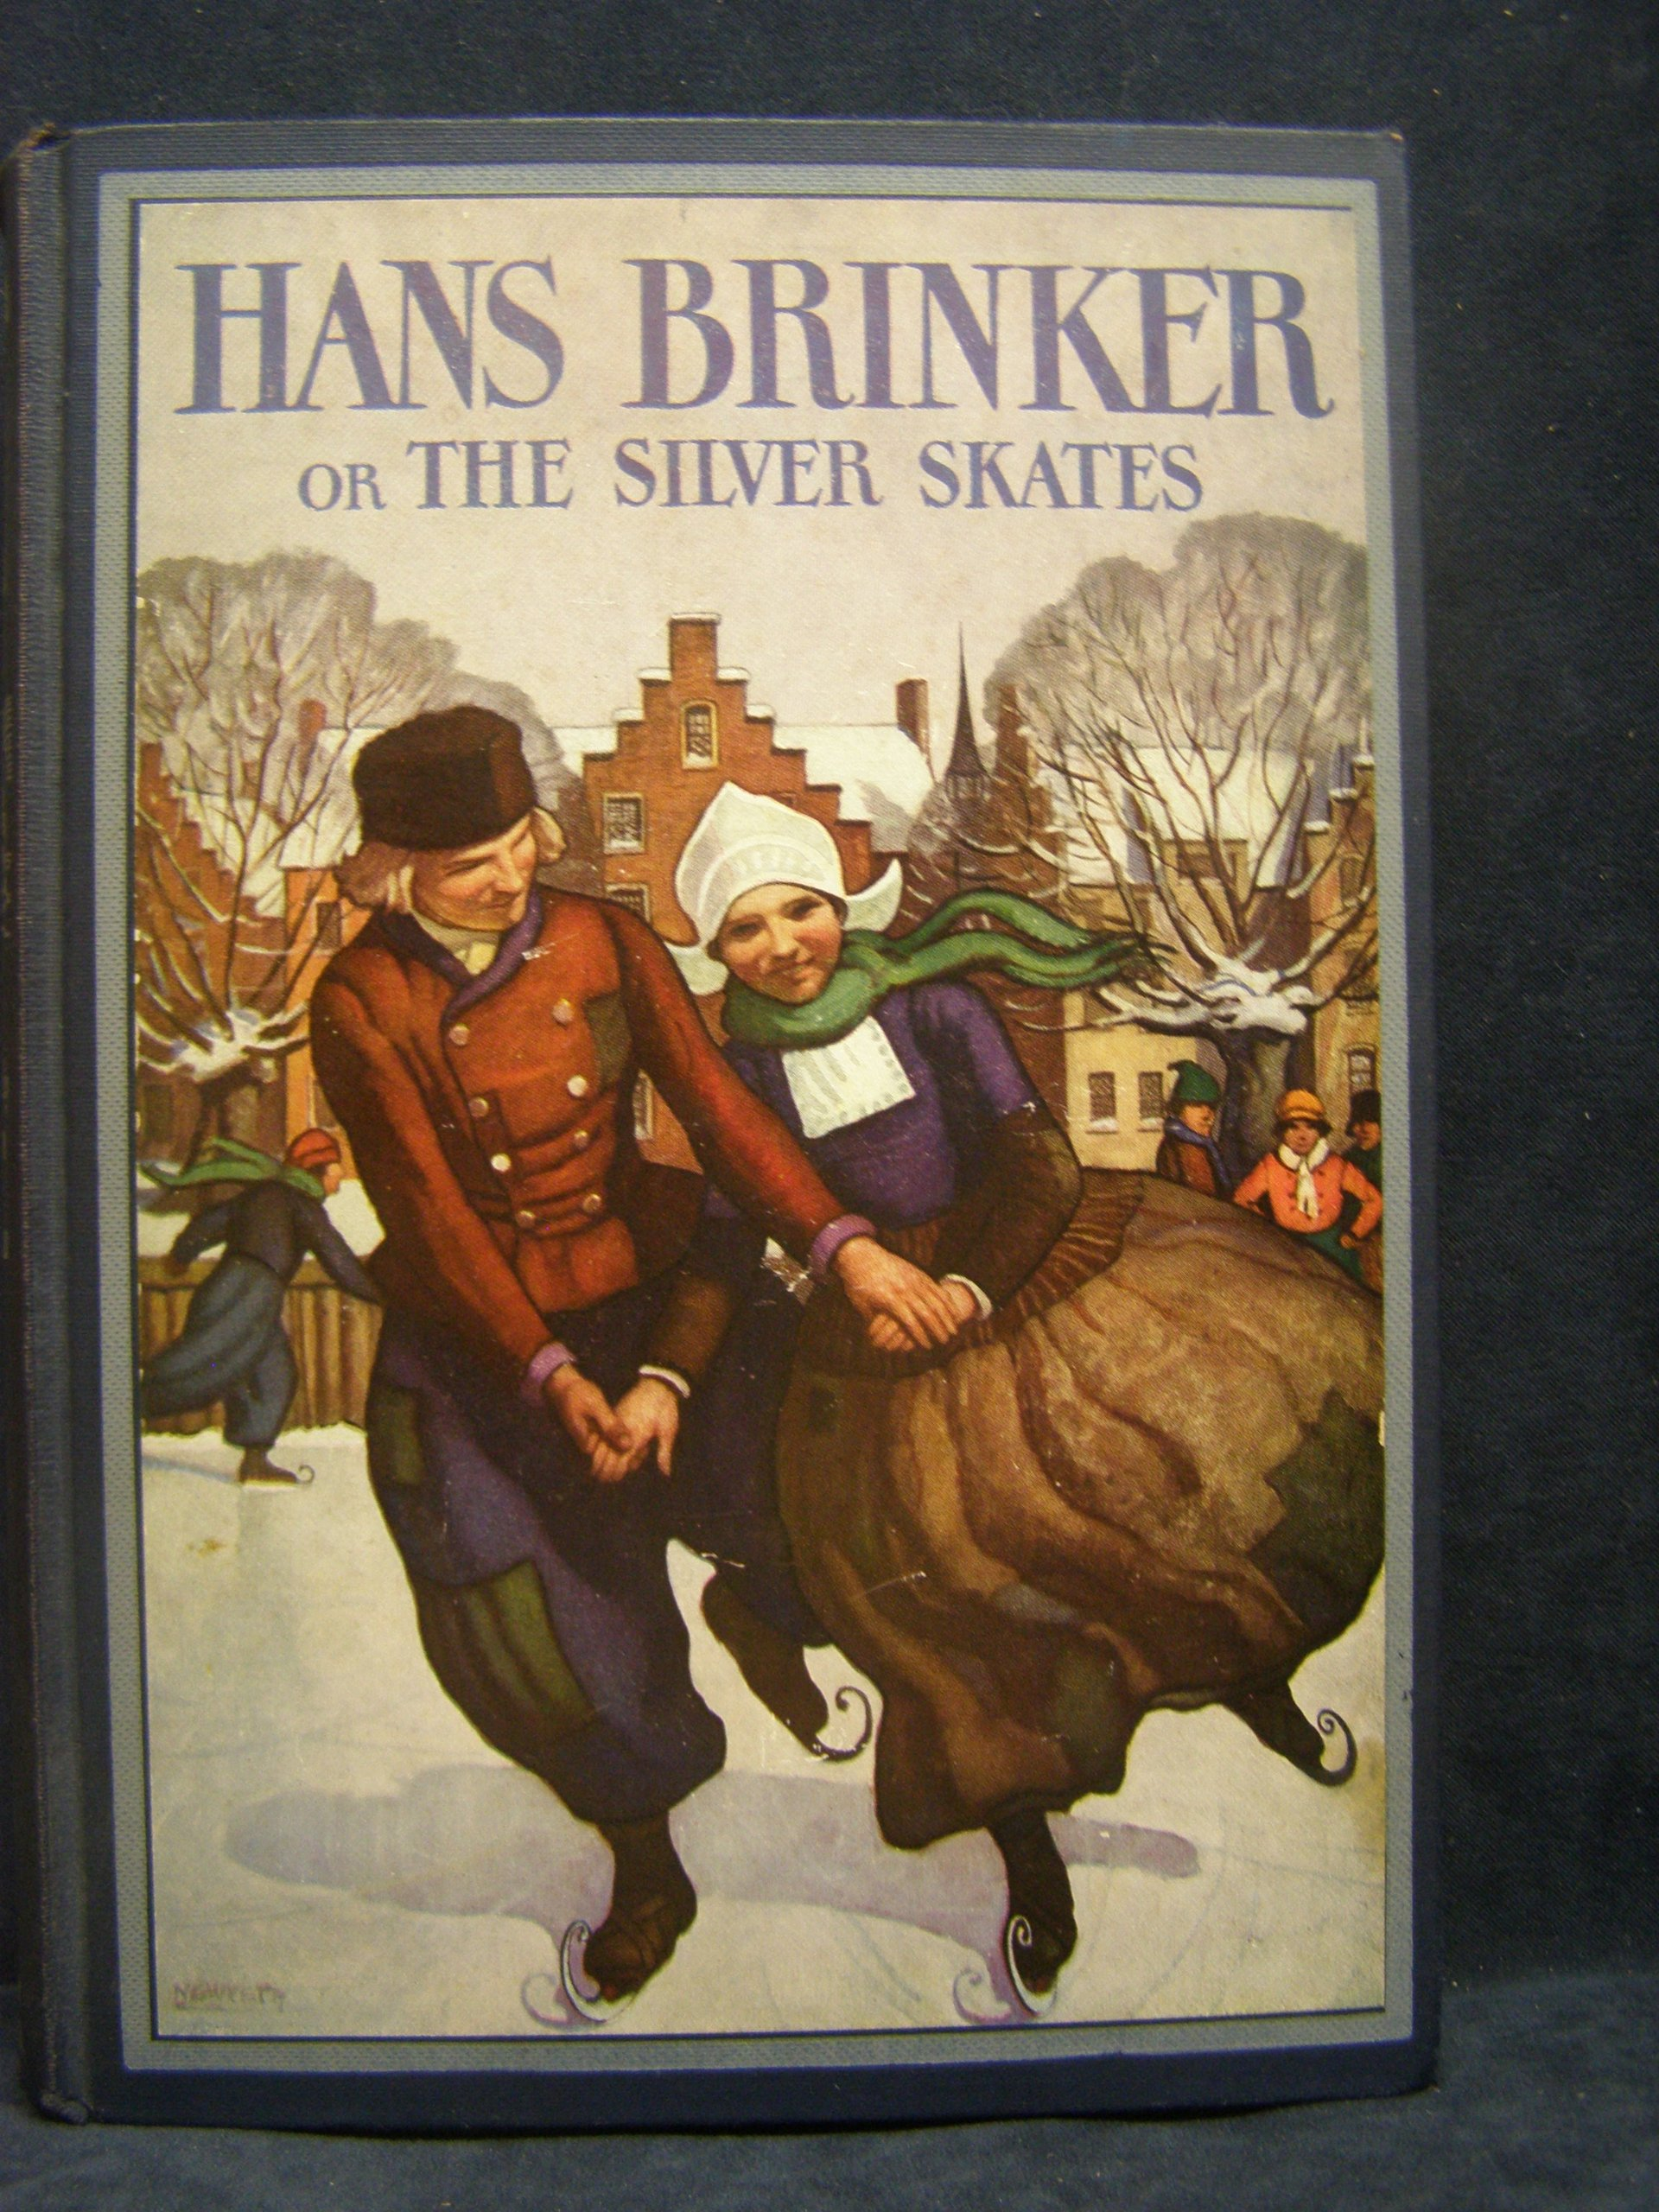 Hans Brinker and the Silver Skates